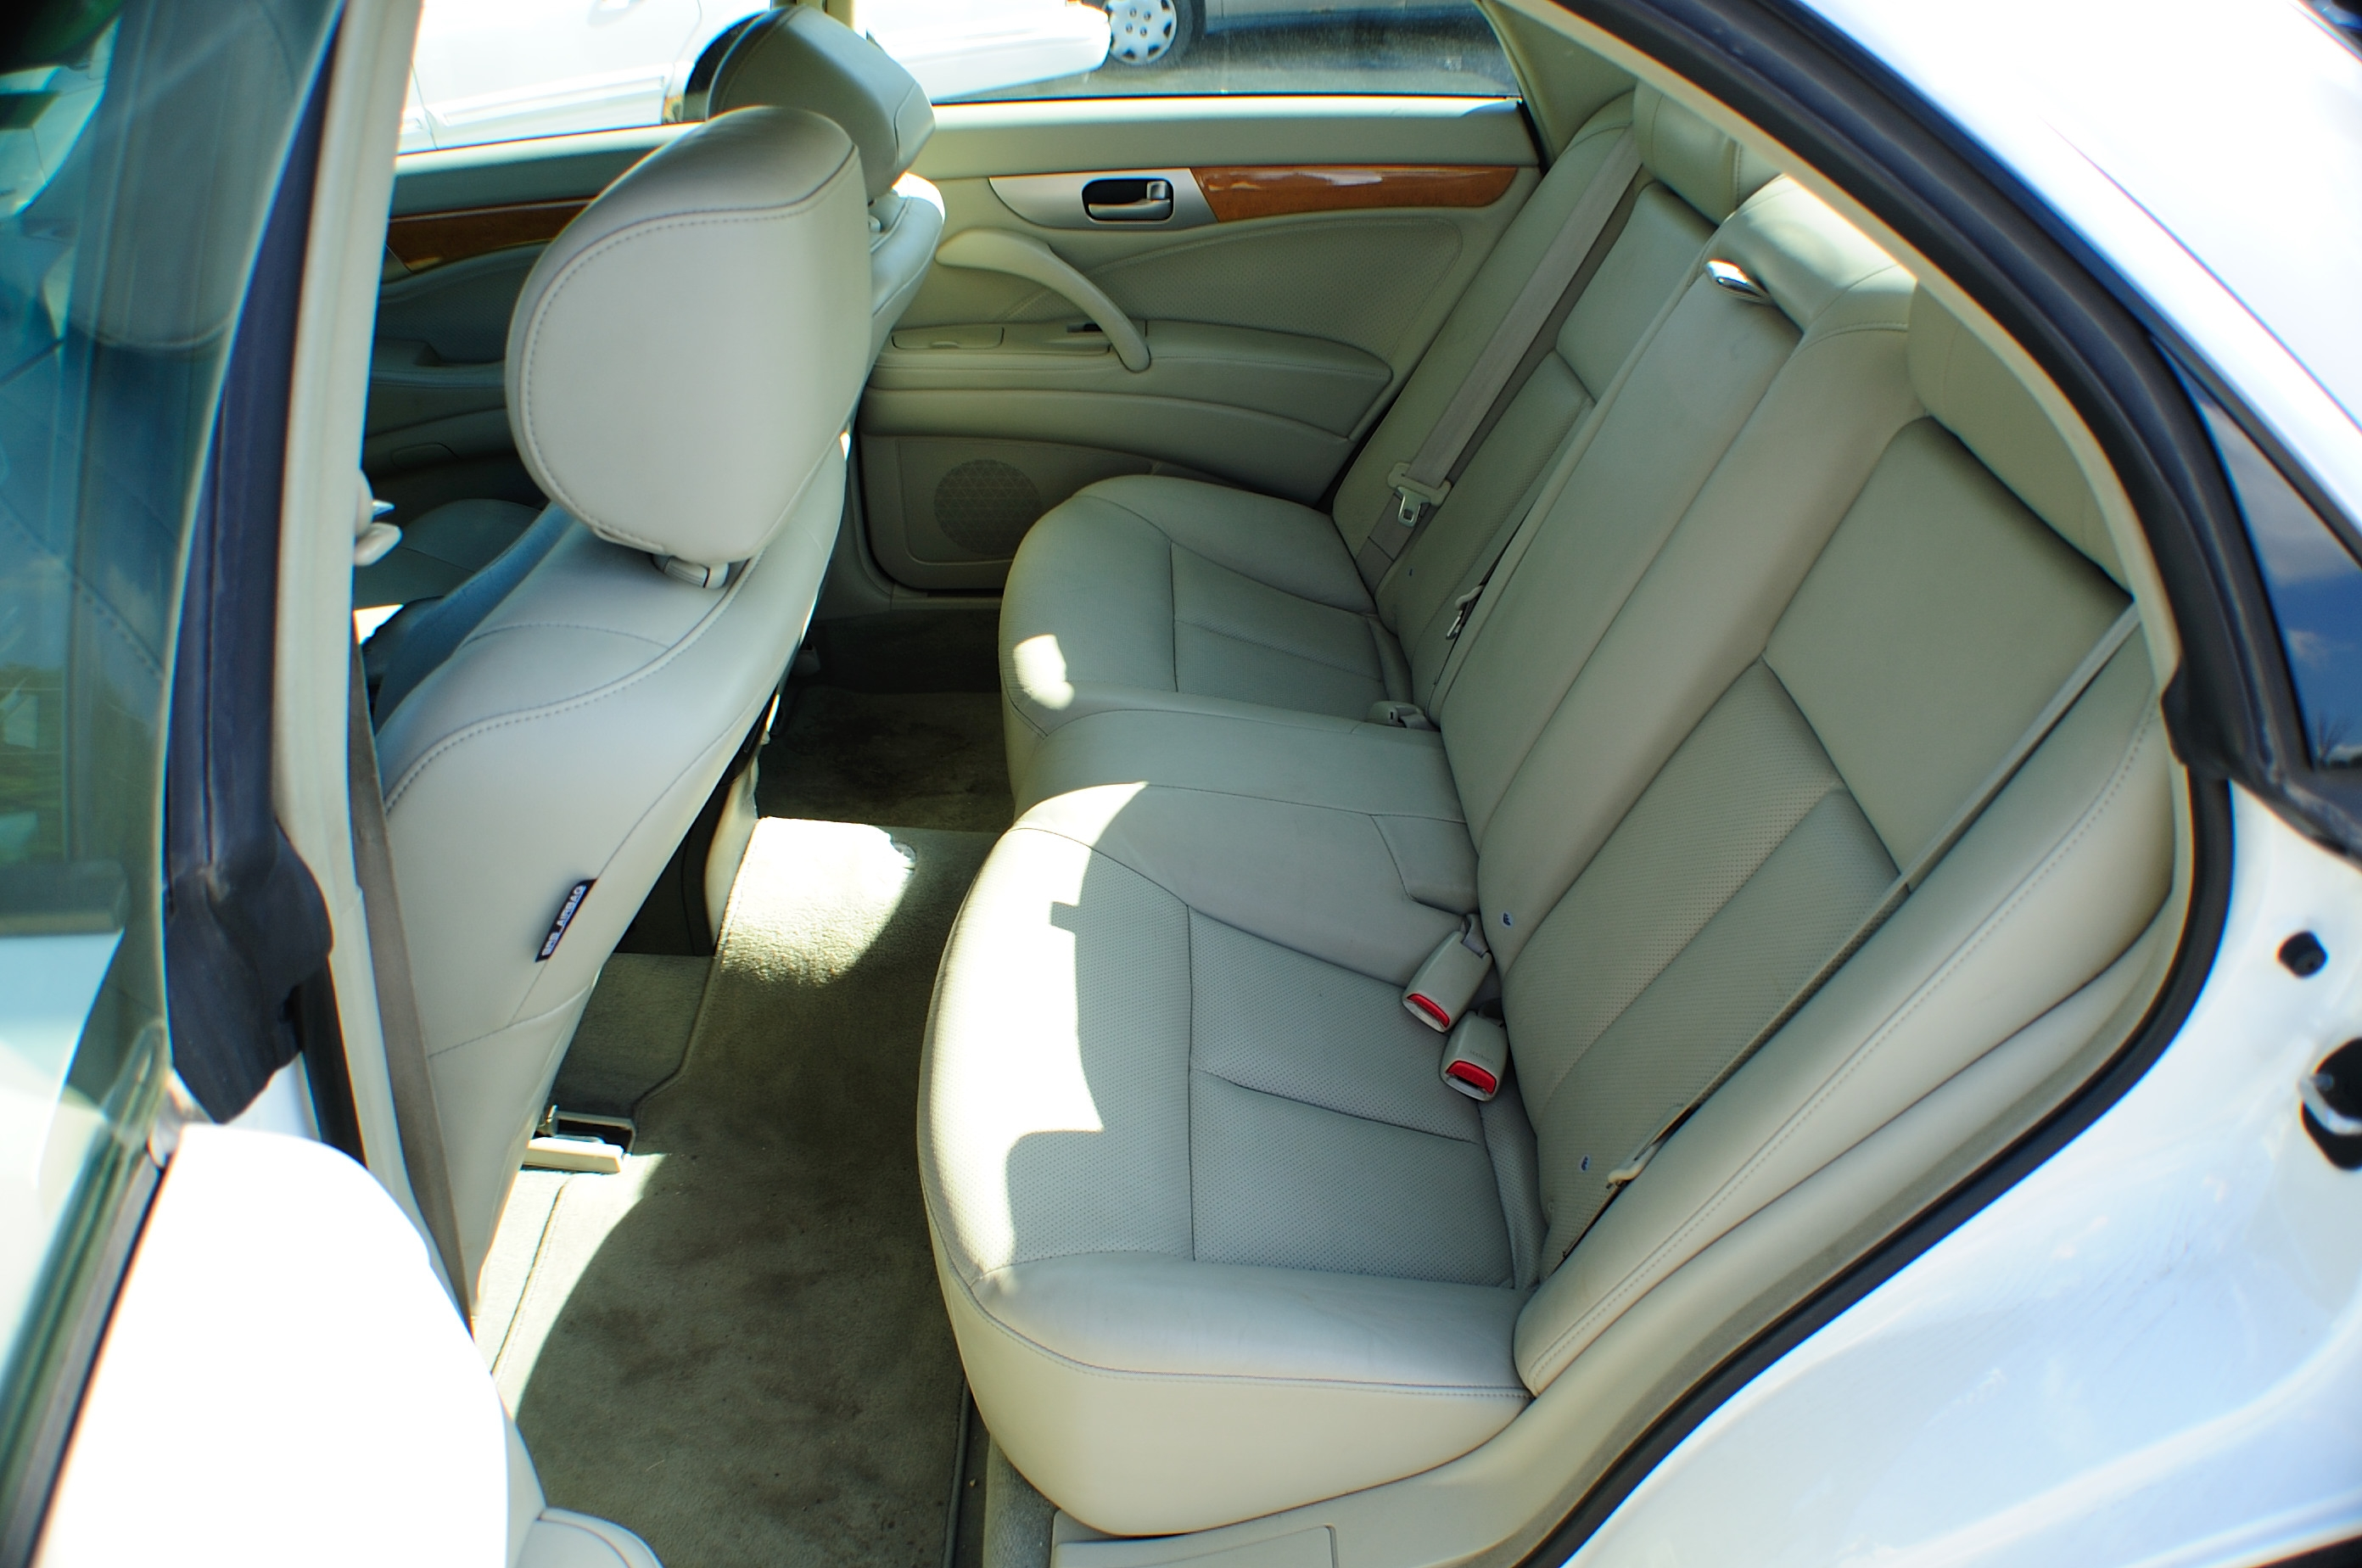 2004 infiniti m45 white images hd cars wallpaper 2003 infiniti m45 white gallery hd cars wallpaper 2004 infiniti m45 white images reverse search filename vanachro Images